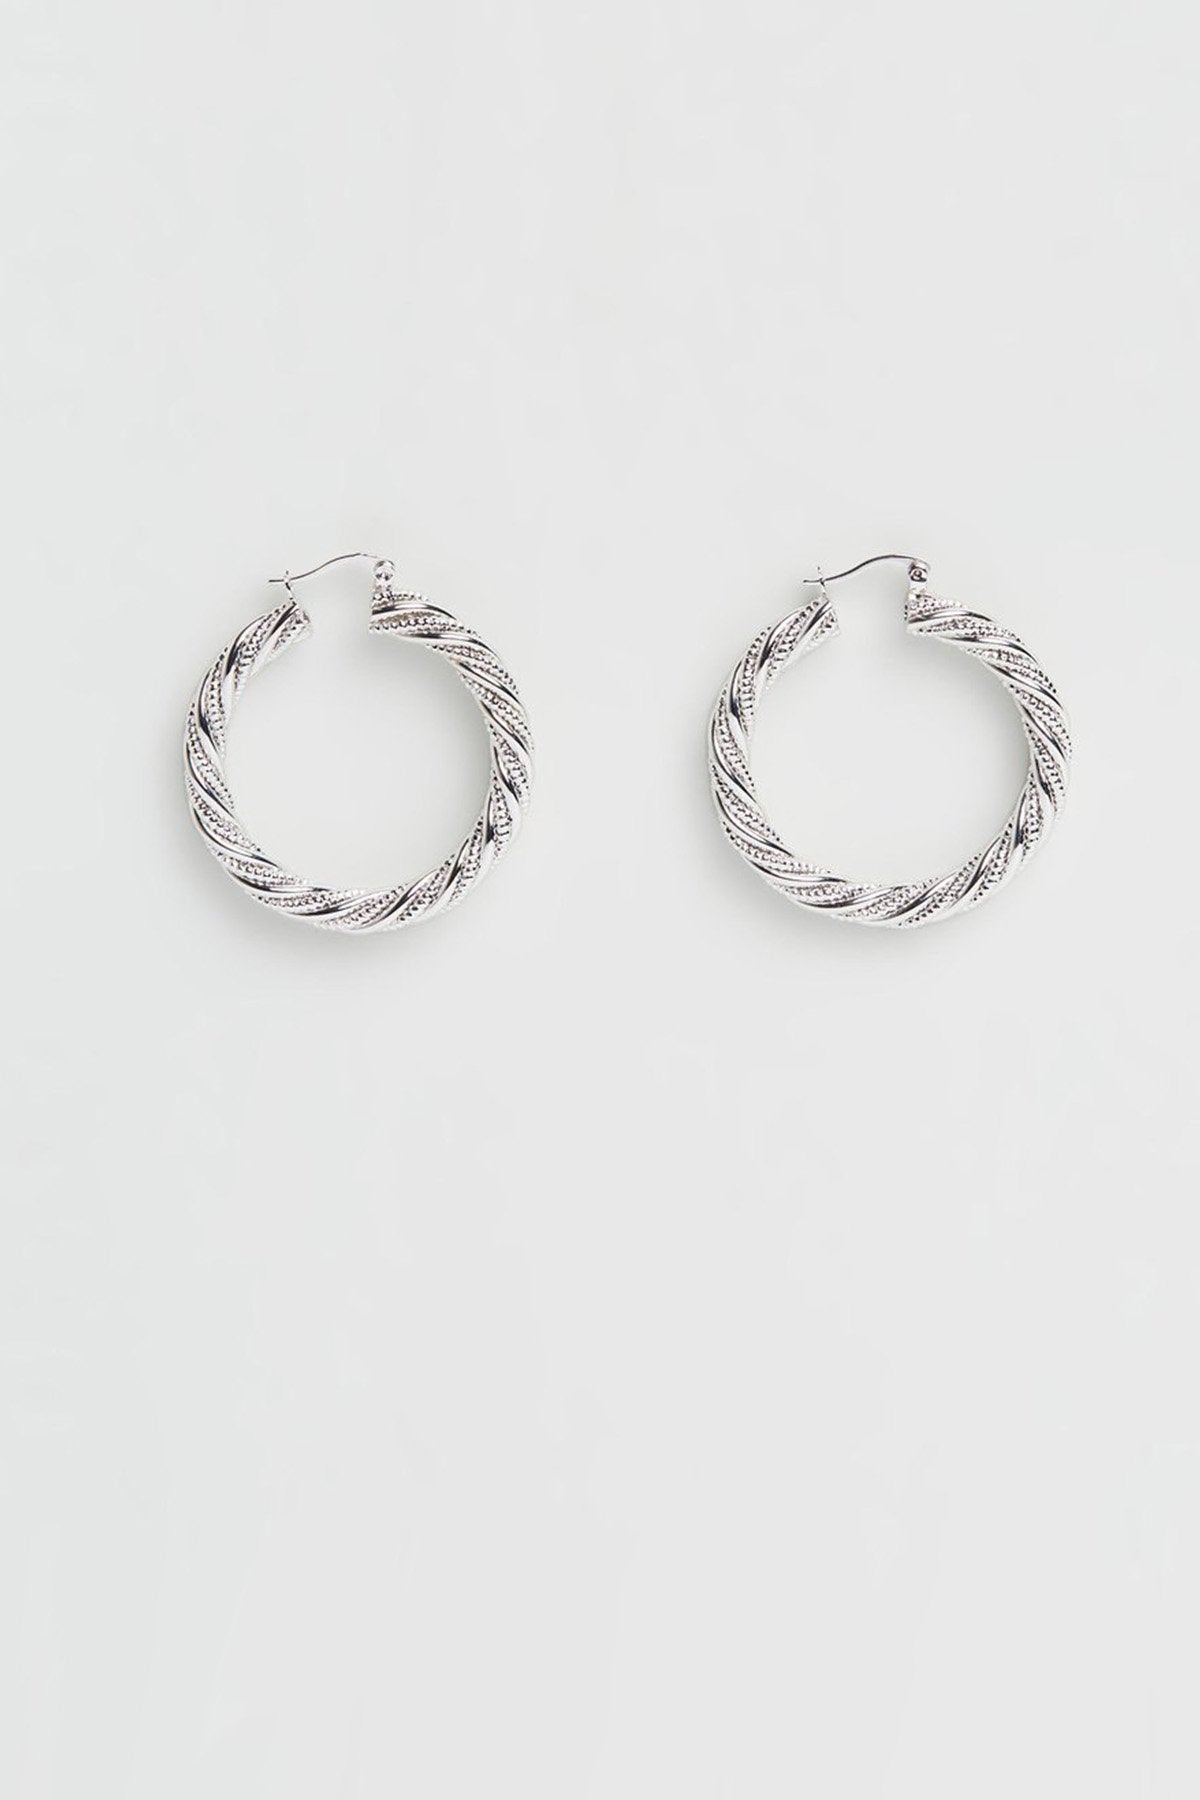 Reliquia Rope Earrings // Silver